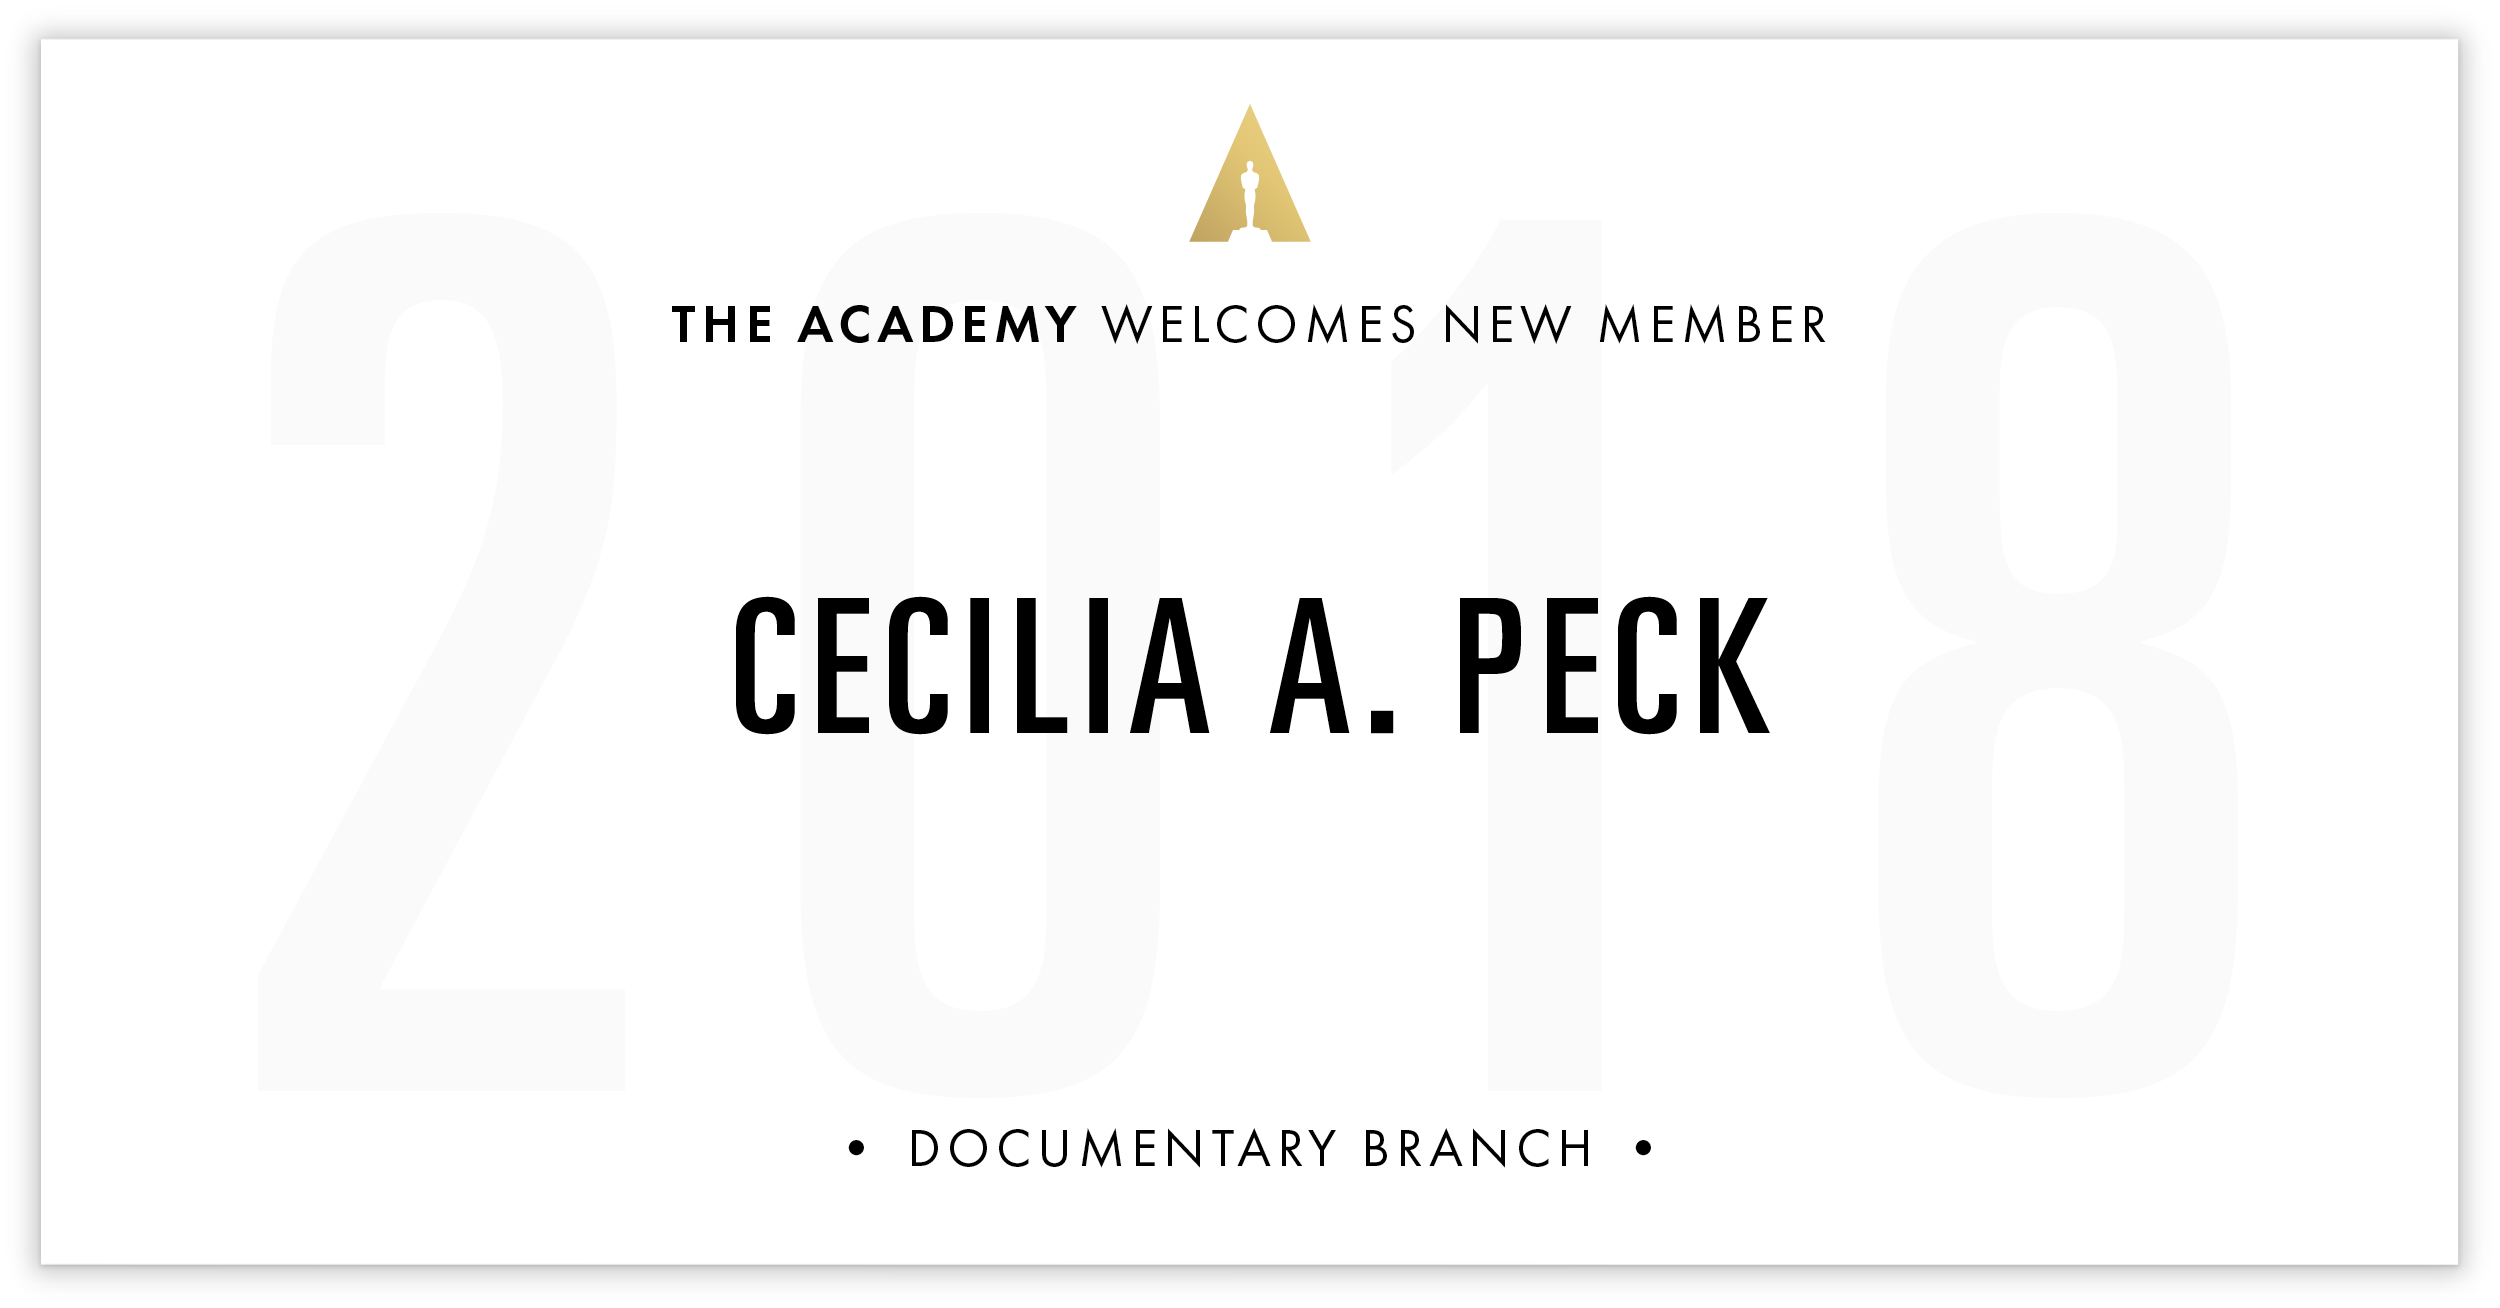 Cecilia Peck is invited!